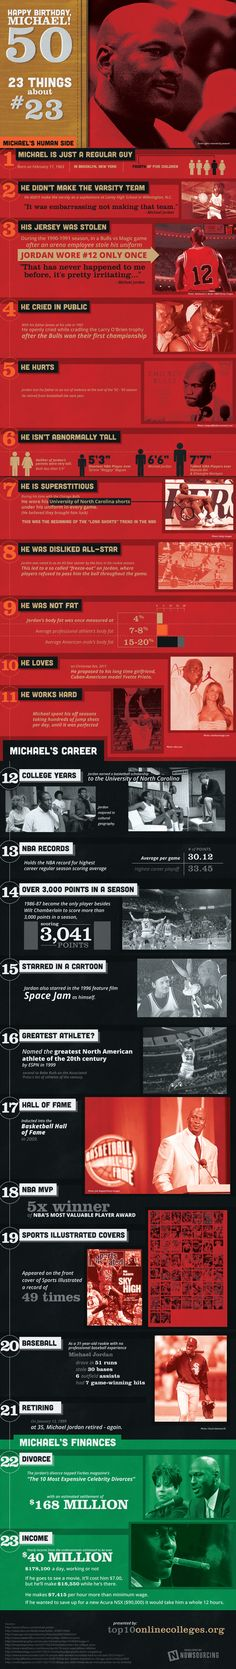 michael-jordan imho... the greatest basketball player of my time! bar-none!